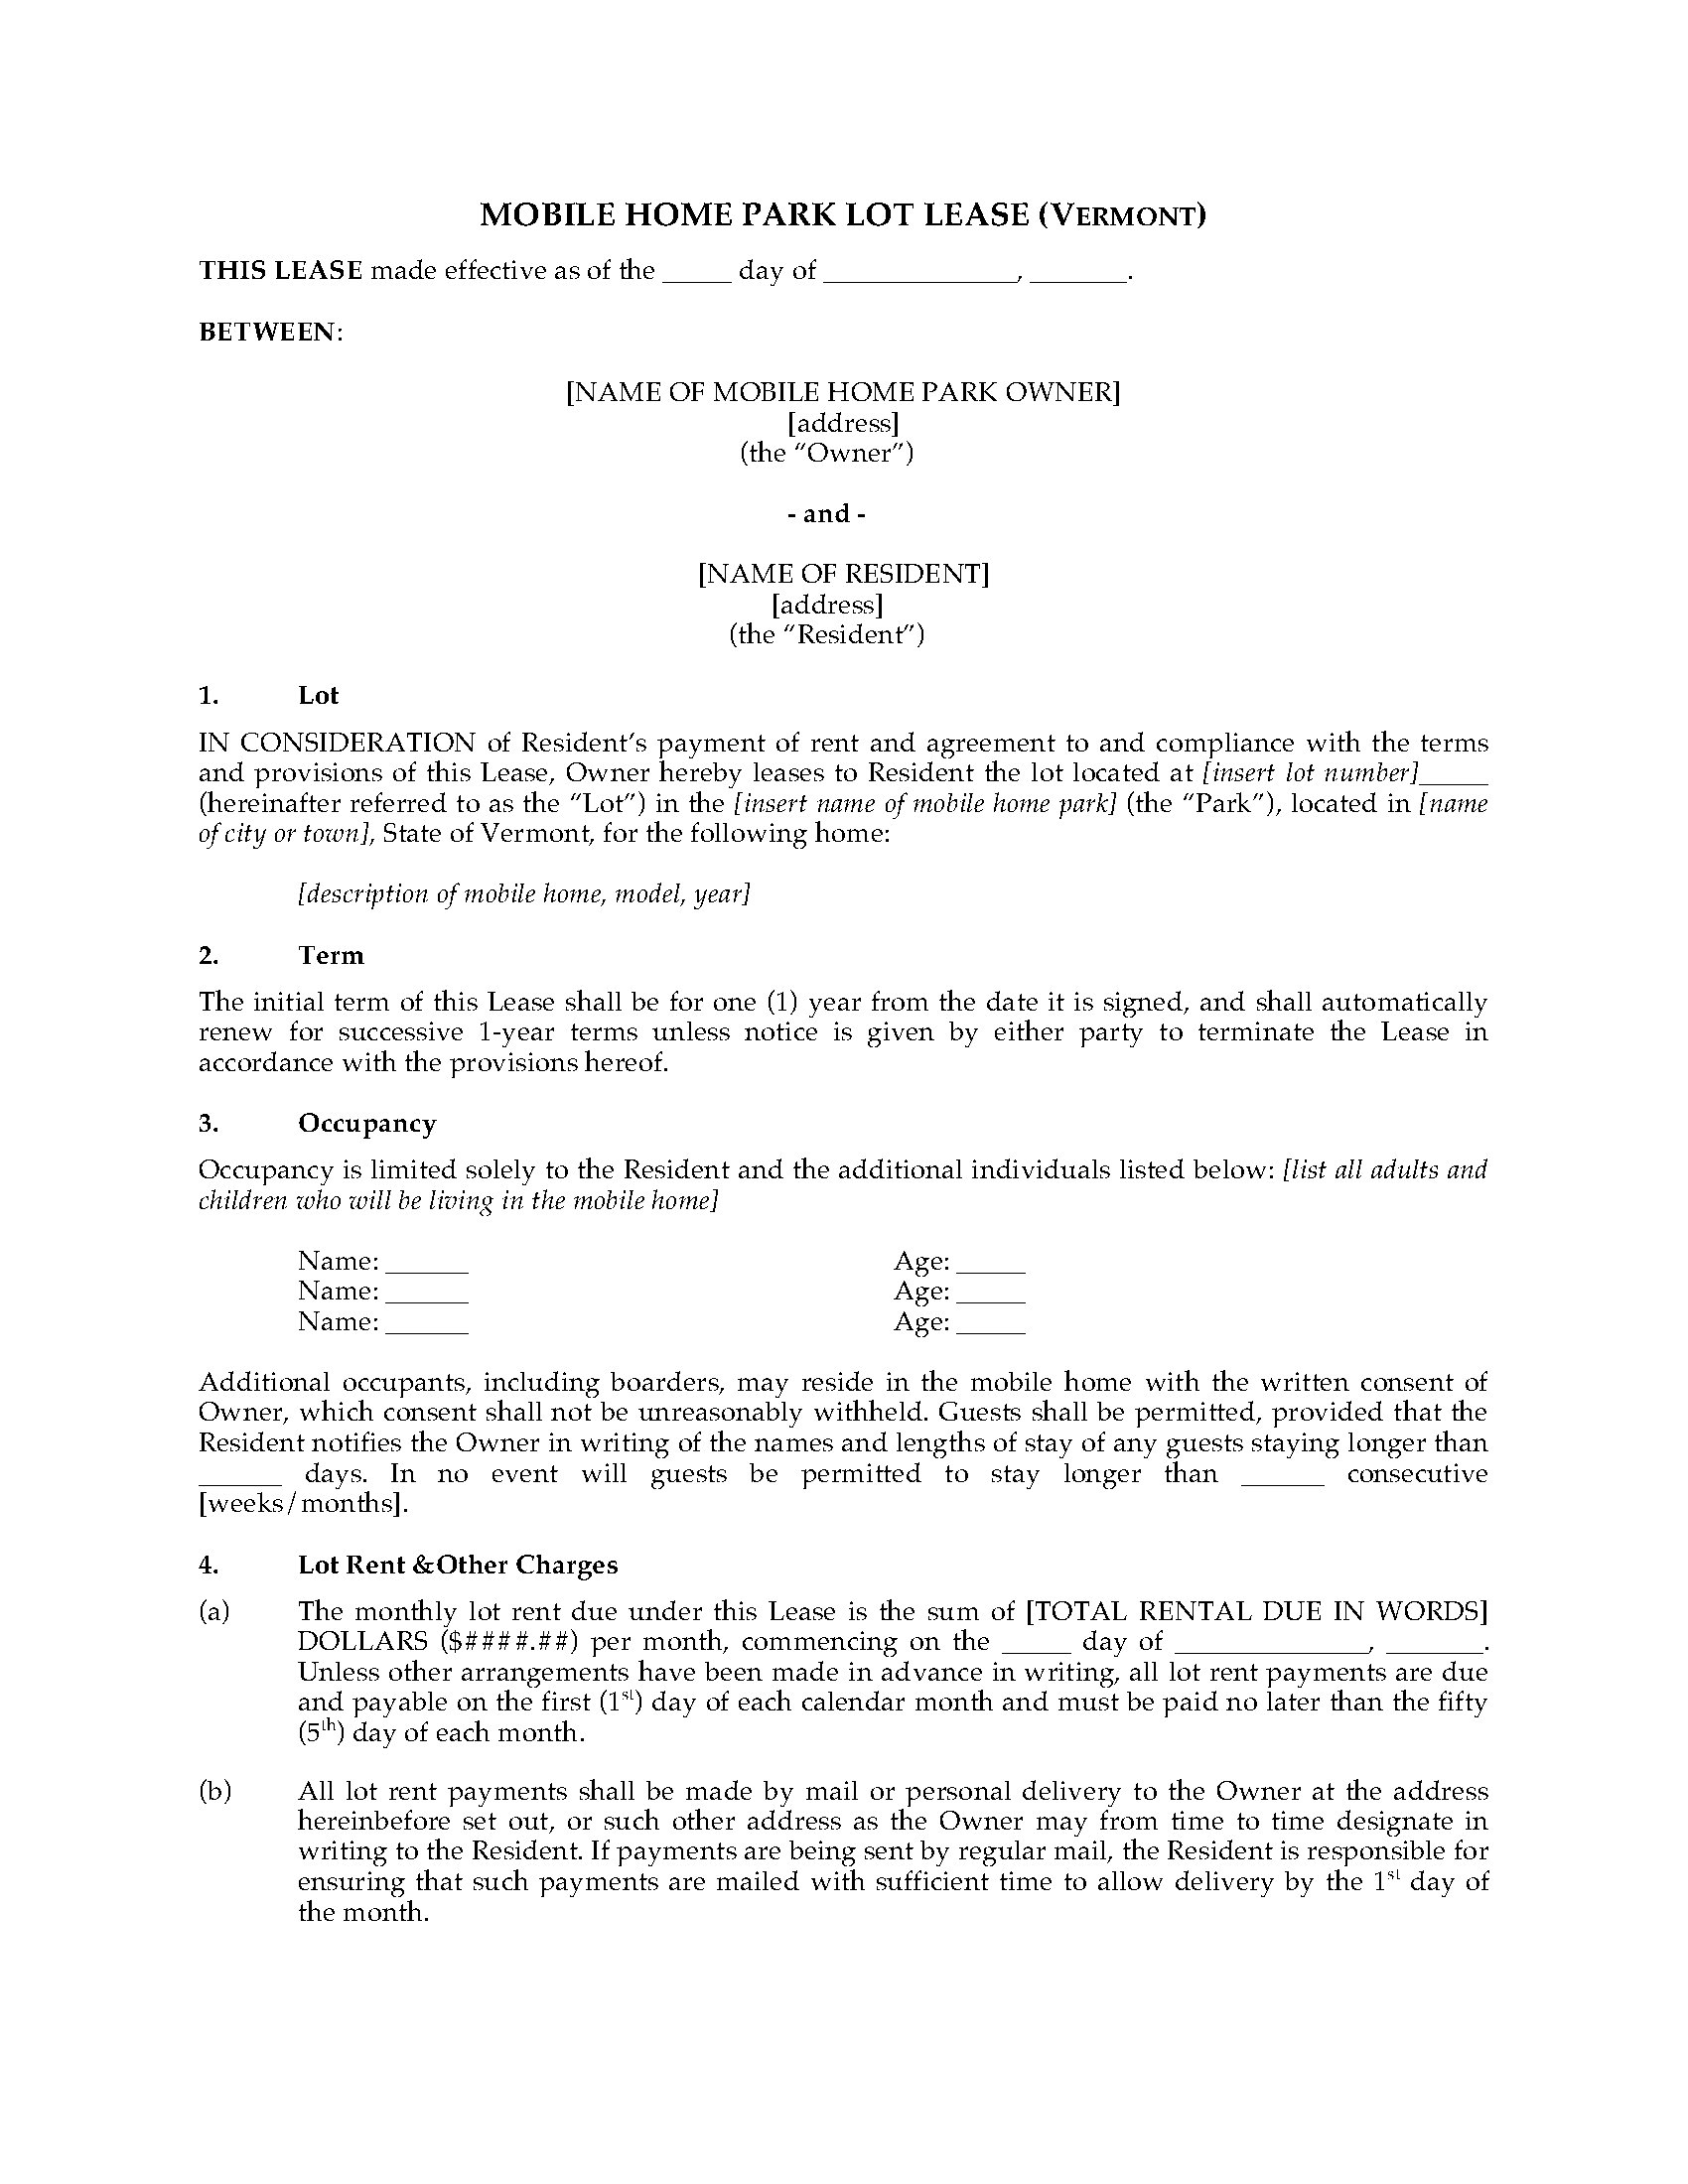 0004340_preview Lease Agreement For Renting A Mobile Home on mobile home park laws, mobile home electric bill, home rental agreement, mobile home rental, mobile home deed, mobile home loan, mobile home maintenance, printable purchase agreement, mobile home title, mobile home insurance, mobile home bill of sale, mobile home affidavit, boat rental space agreement, home purchase agreement,